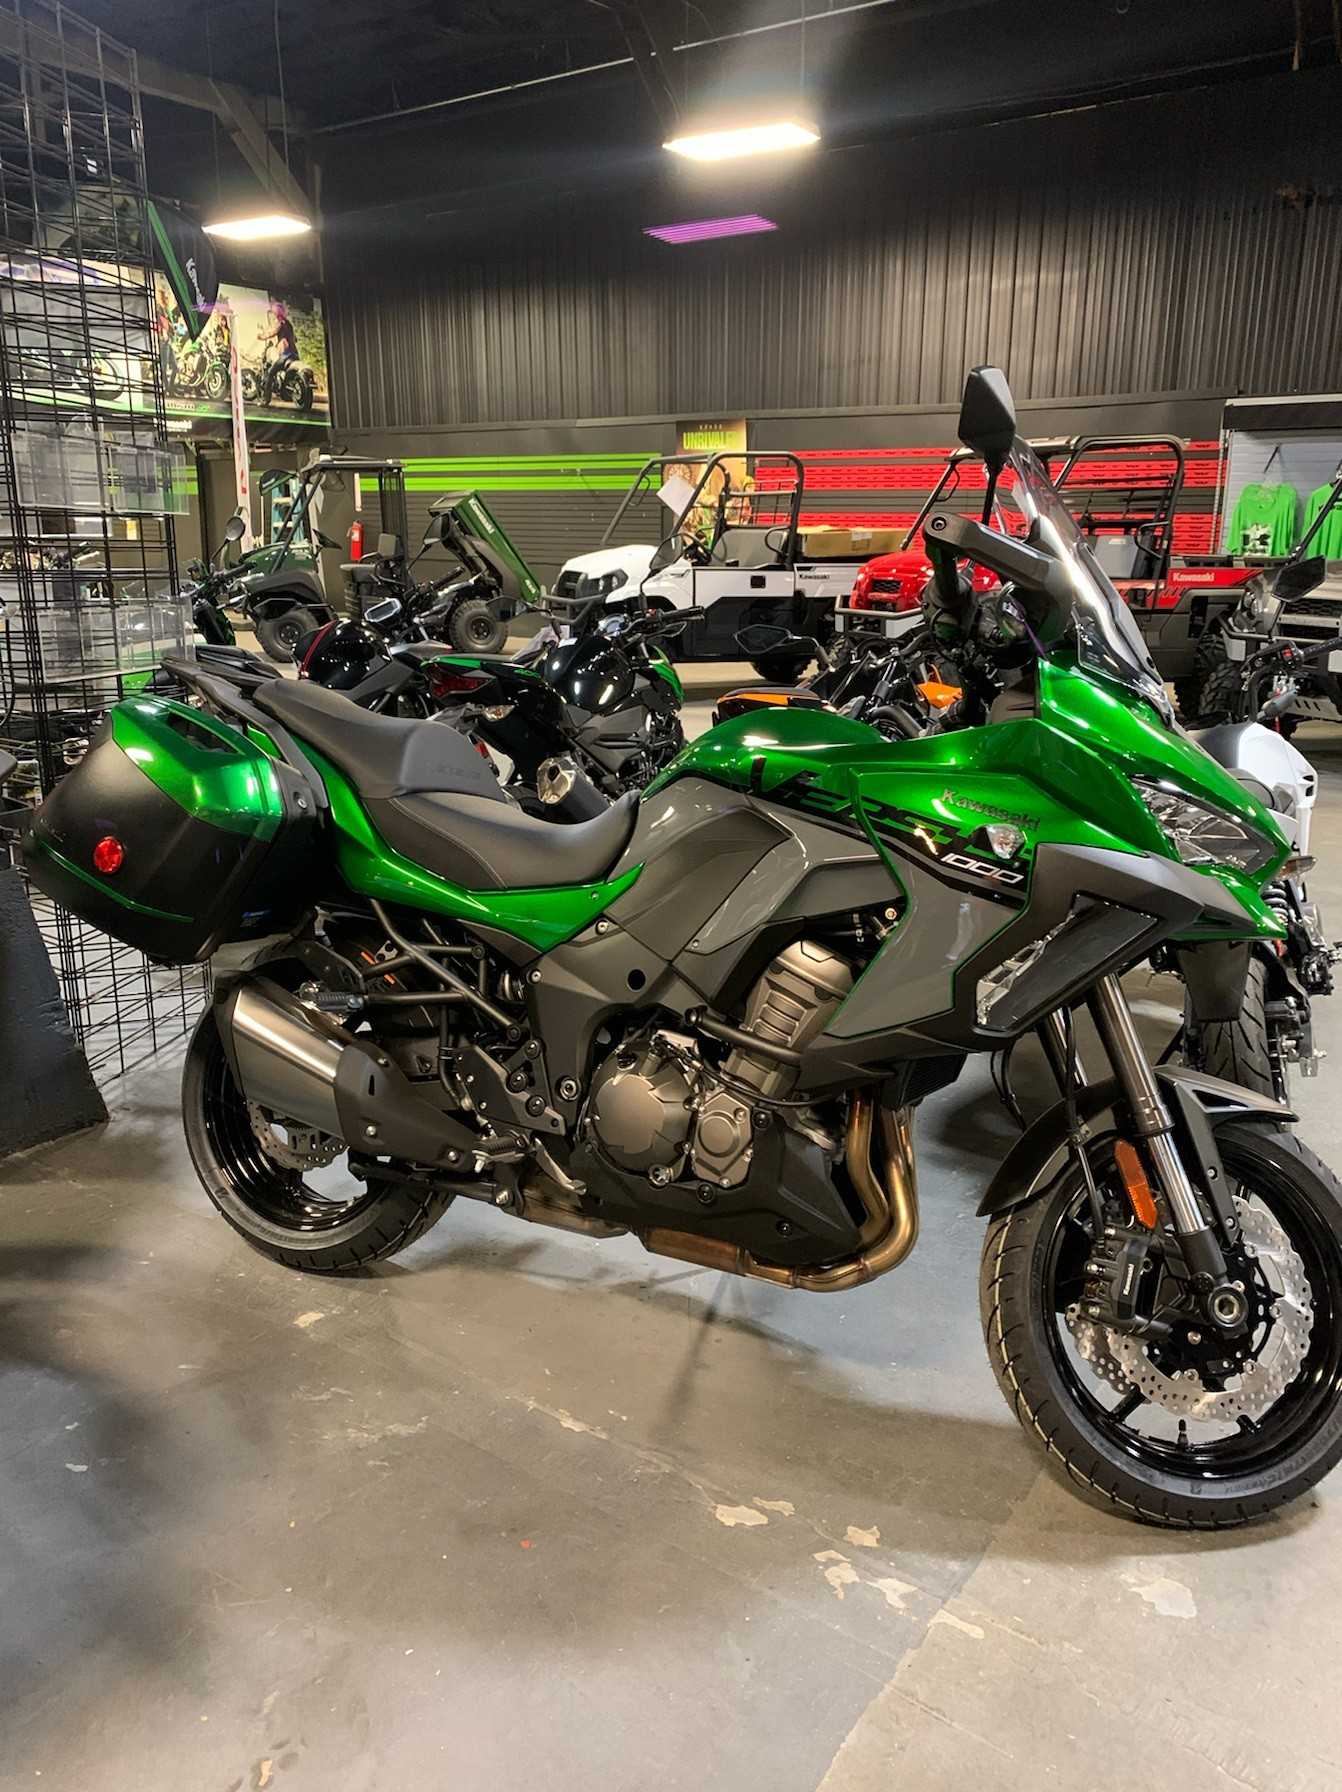 2020 Kawasaki VERSYS 1000 SE LT in Kingsport, Tennessee - Photo 1